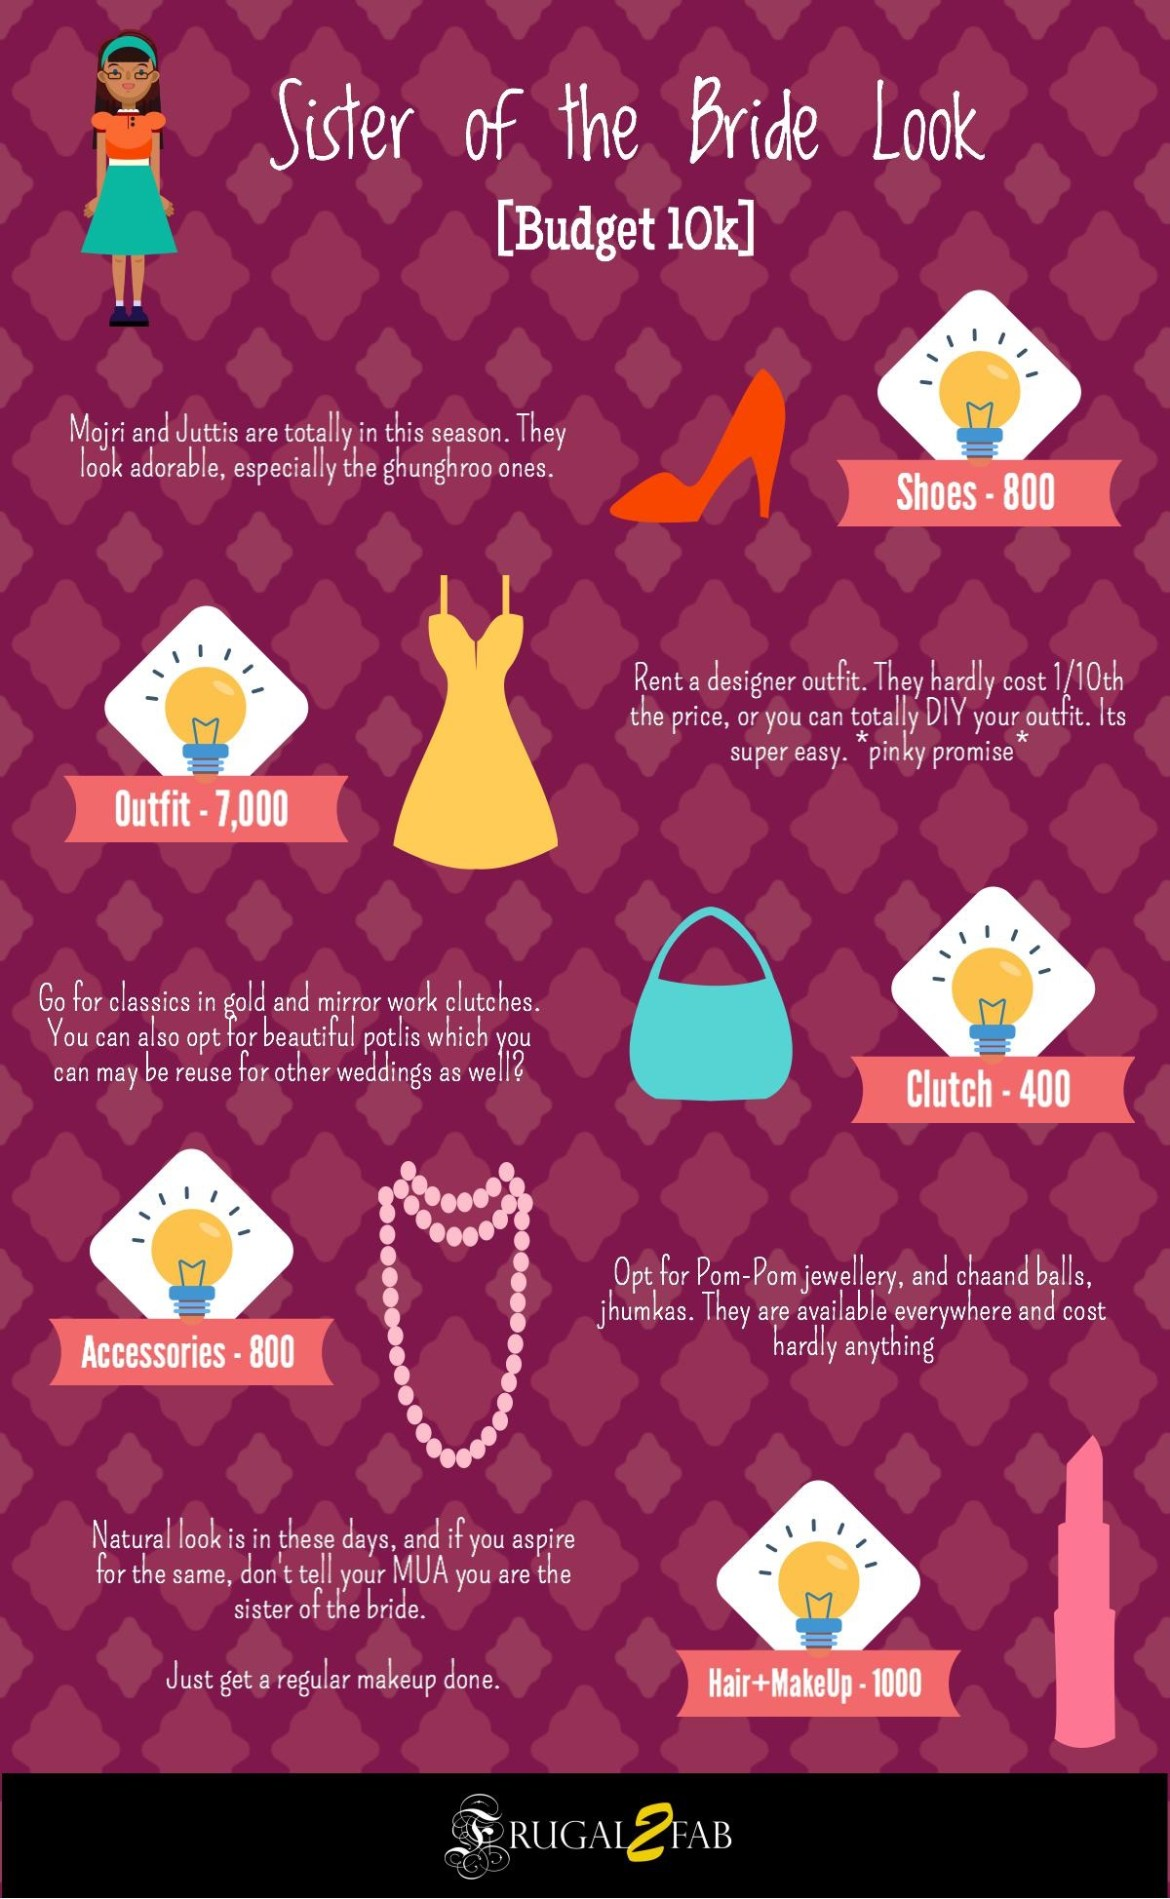 How to be a pataka sister of the bride in budget 10k - Frugal2Fab